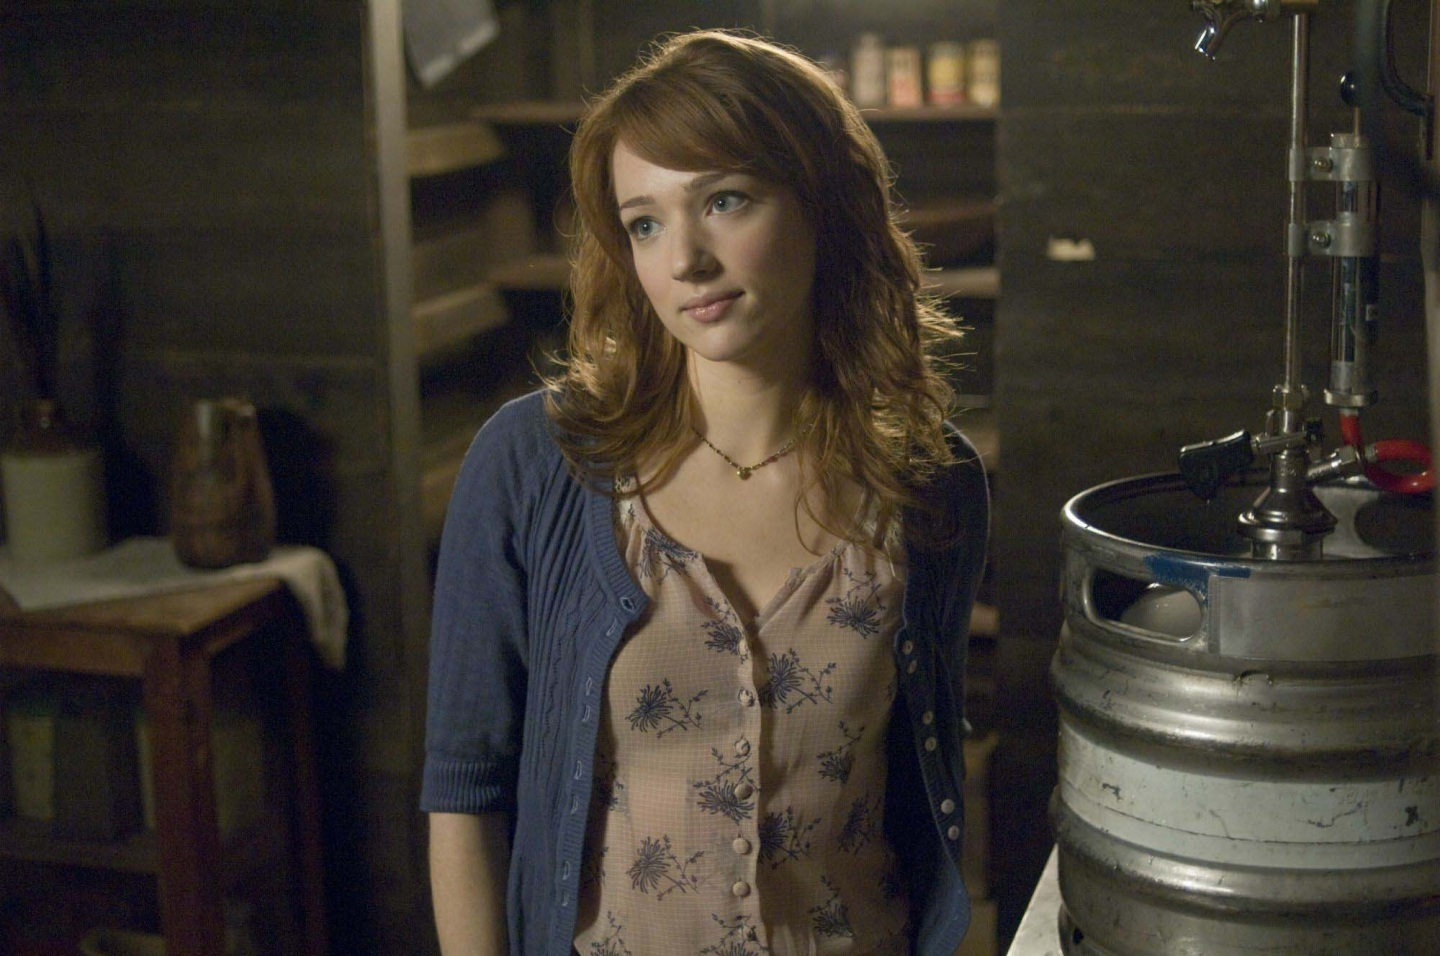 1440x956 - Kristen Connolly Wallpapers 22